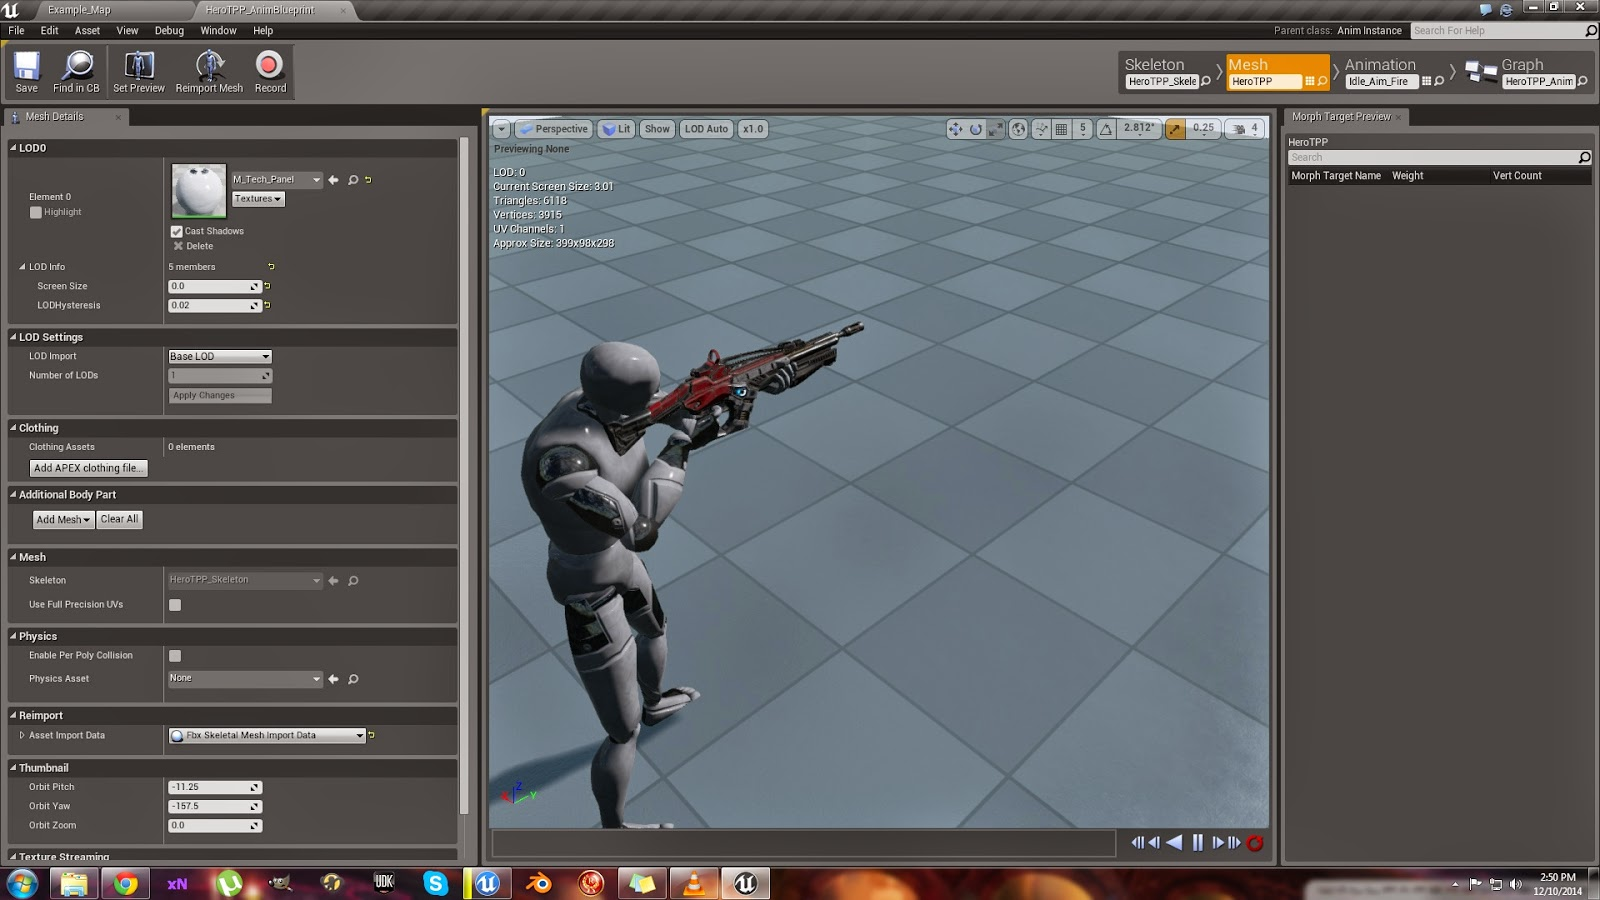 Unreal possibilities unreal engine 4 dev update 8 new rifle locked loaded malvernweather Gallery